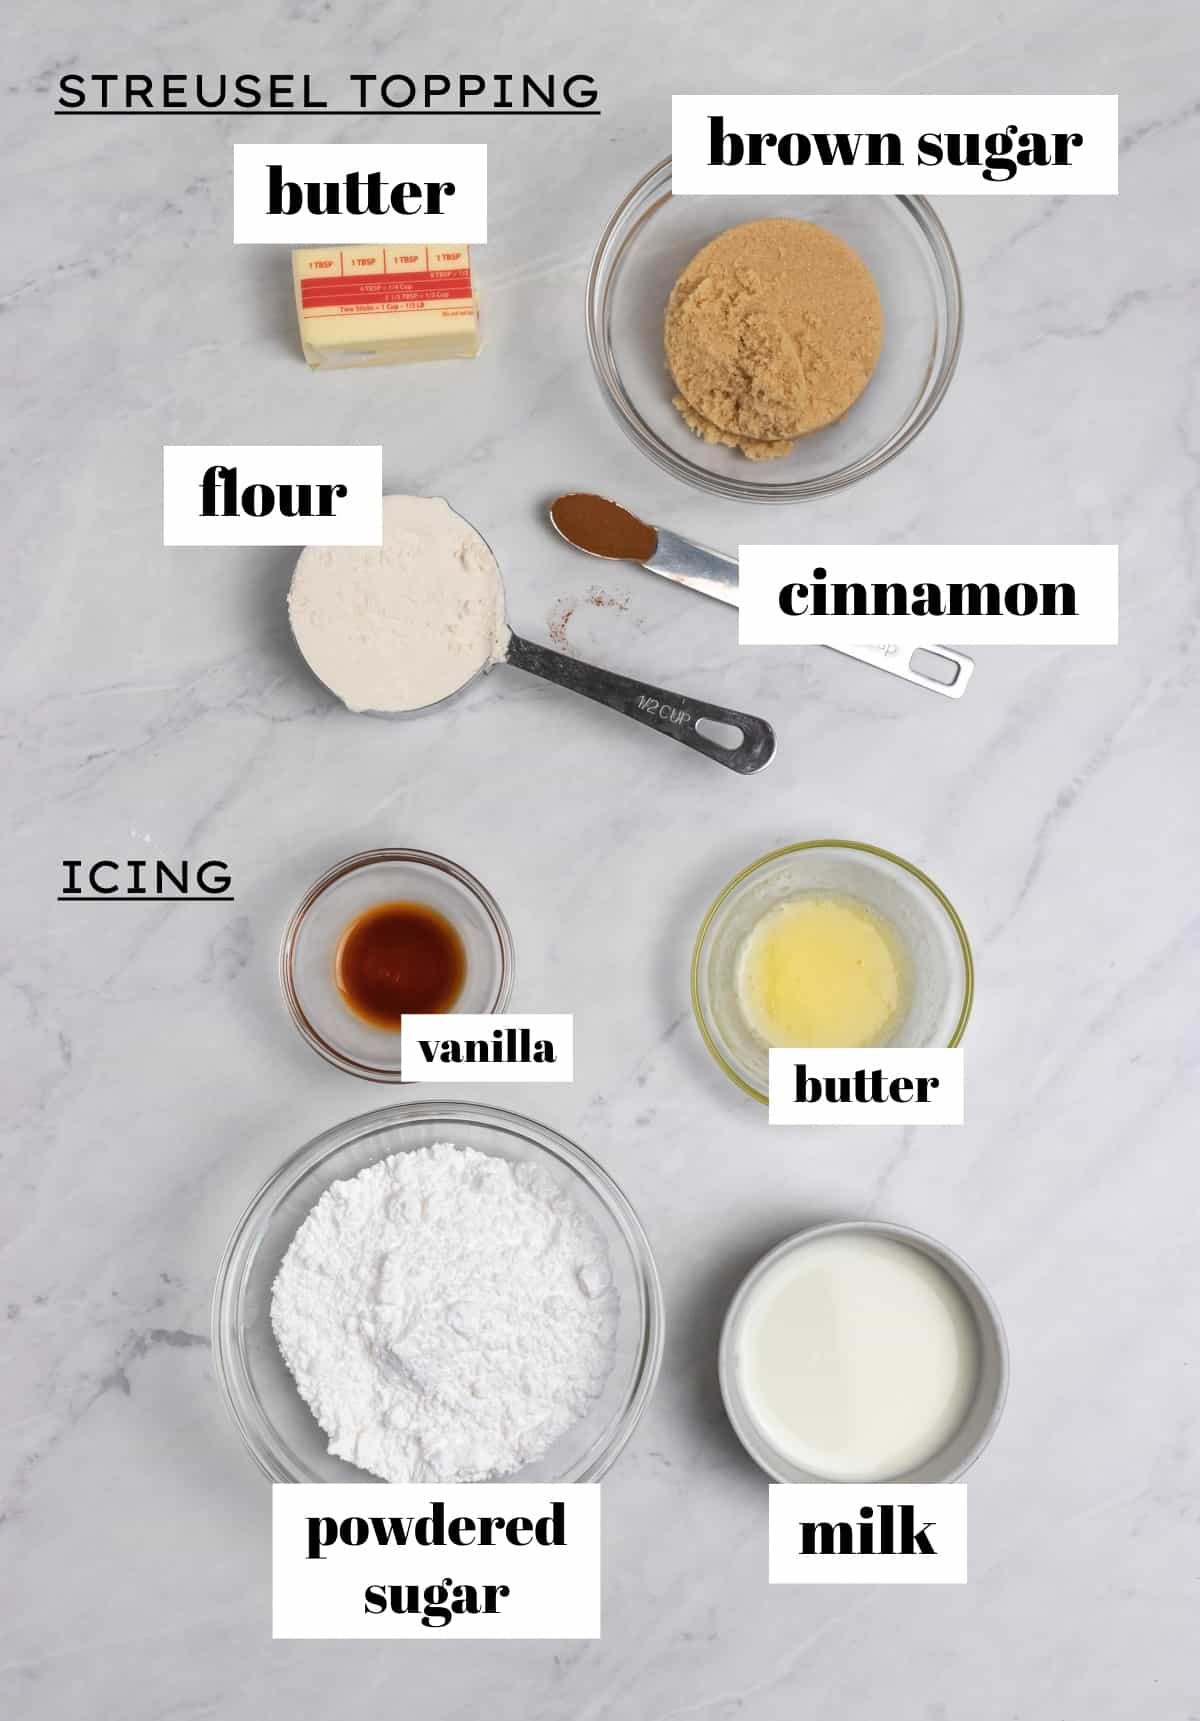 Icing and streusel topping ingredients sorted on counter and labeled.